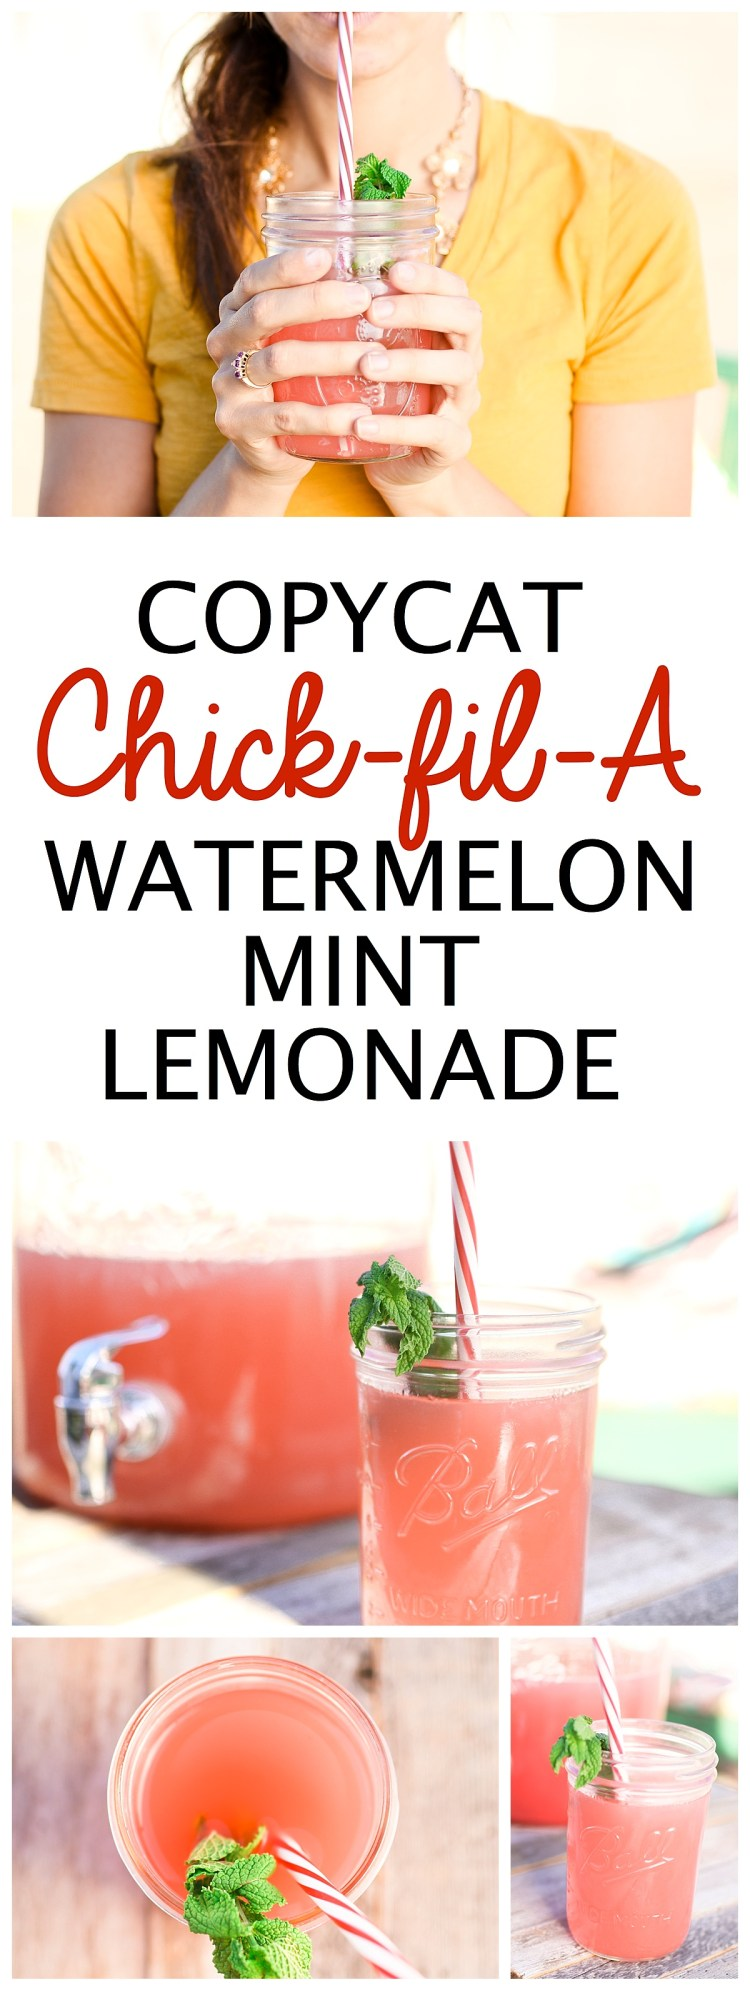 Watermelon Mint Lemonade Chick Fil A Recipe Copycat | Summer Drinks | Fourth of July | Food Ideas | Party Food | BBQ | Drink Recipes | Lemonade Recipe | Summer Fun | Things to Do | Fresh Food | Fruit Recipes